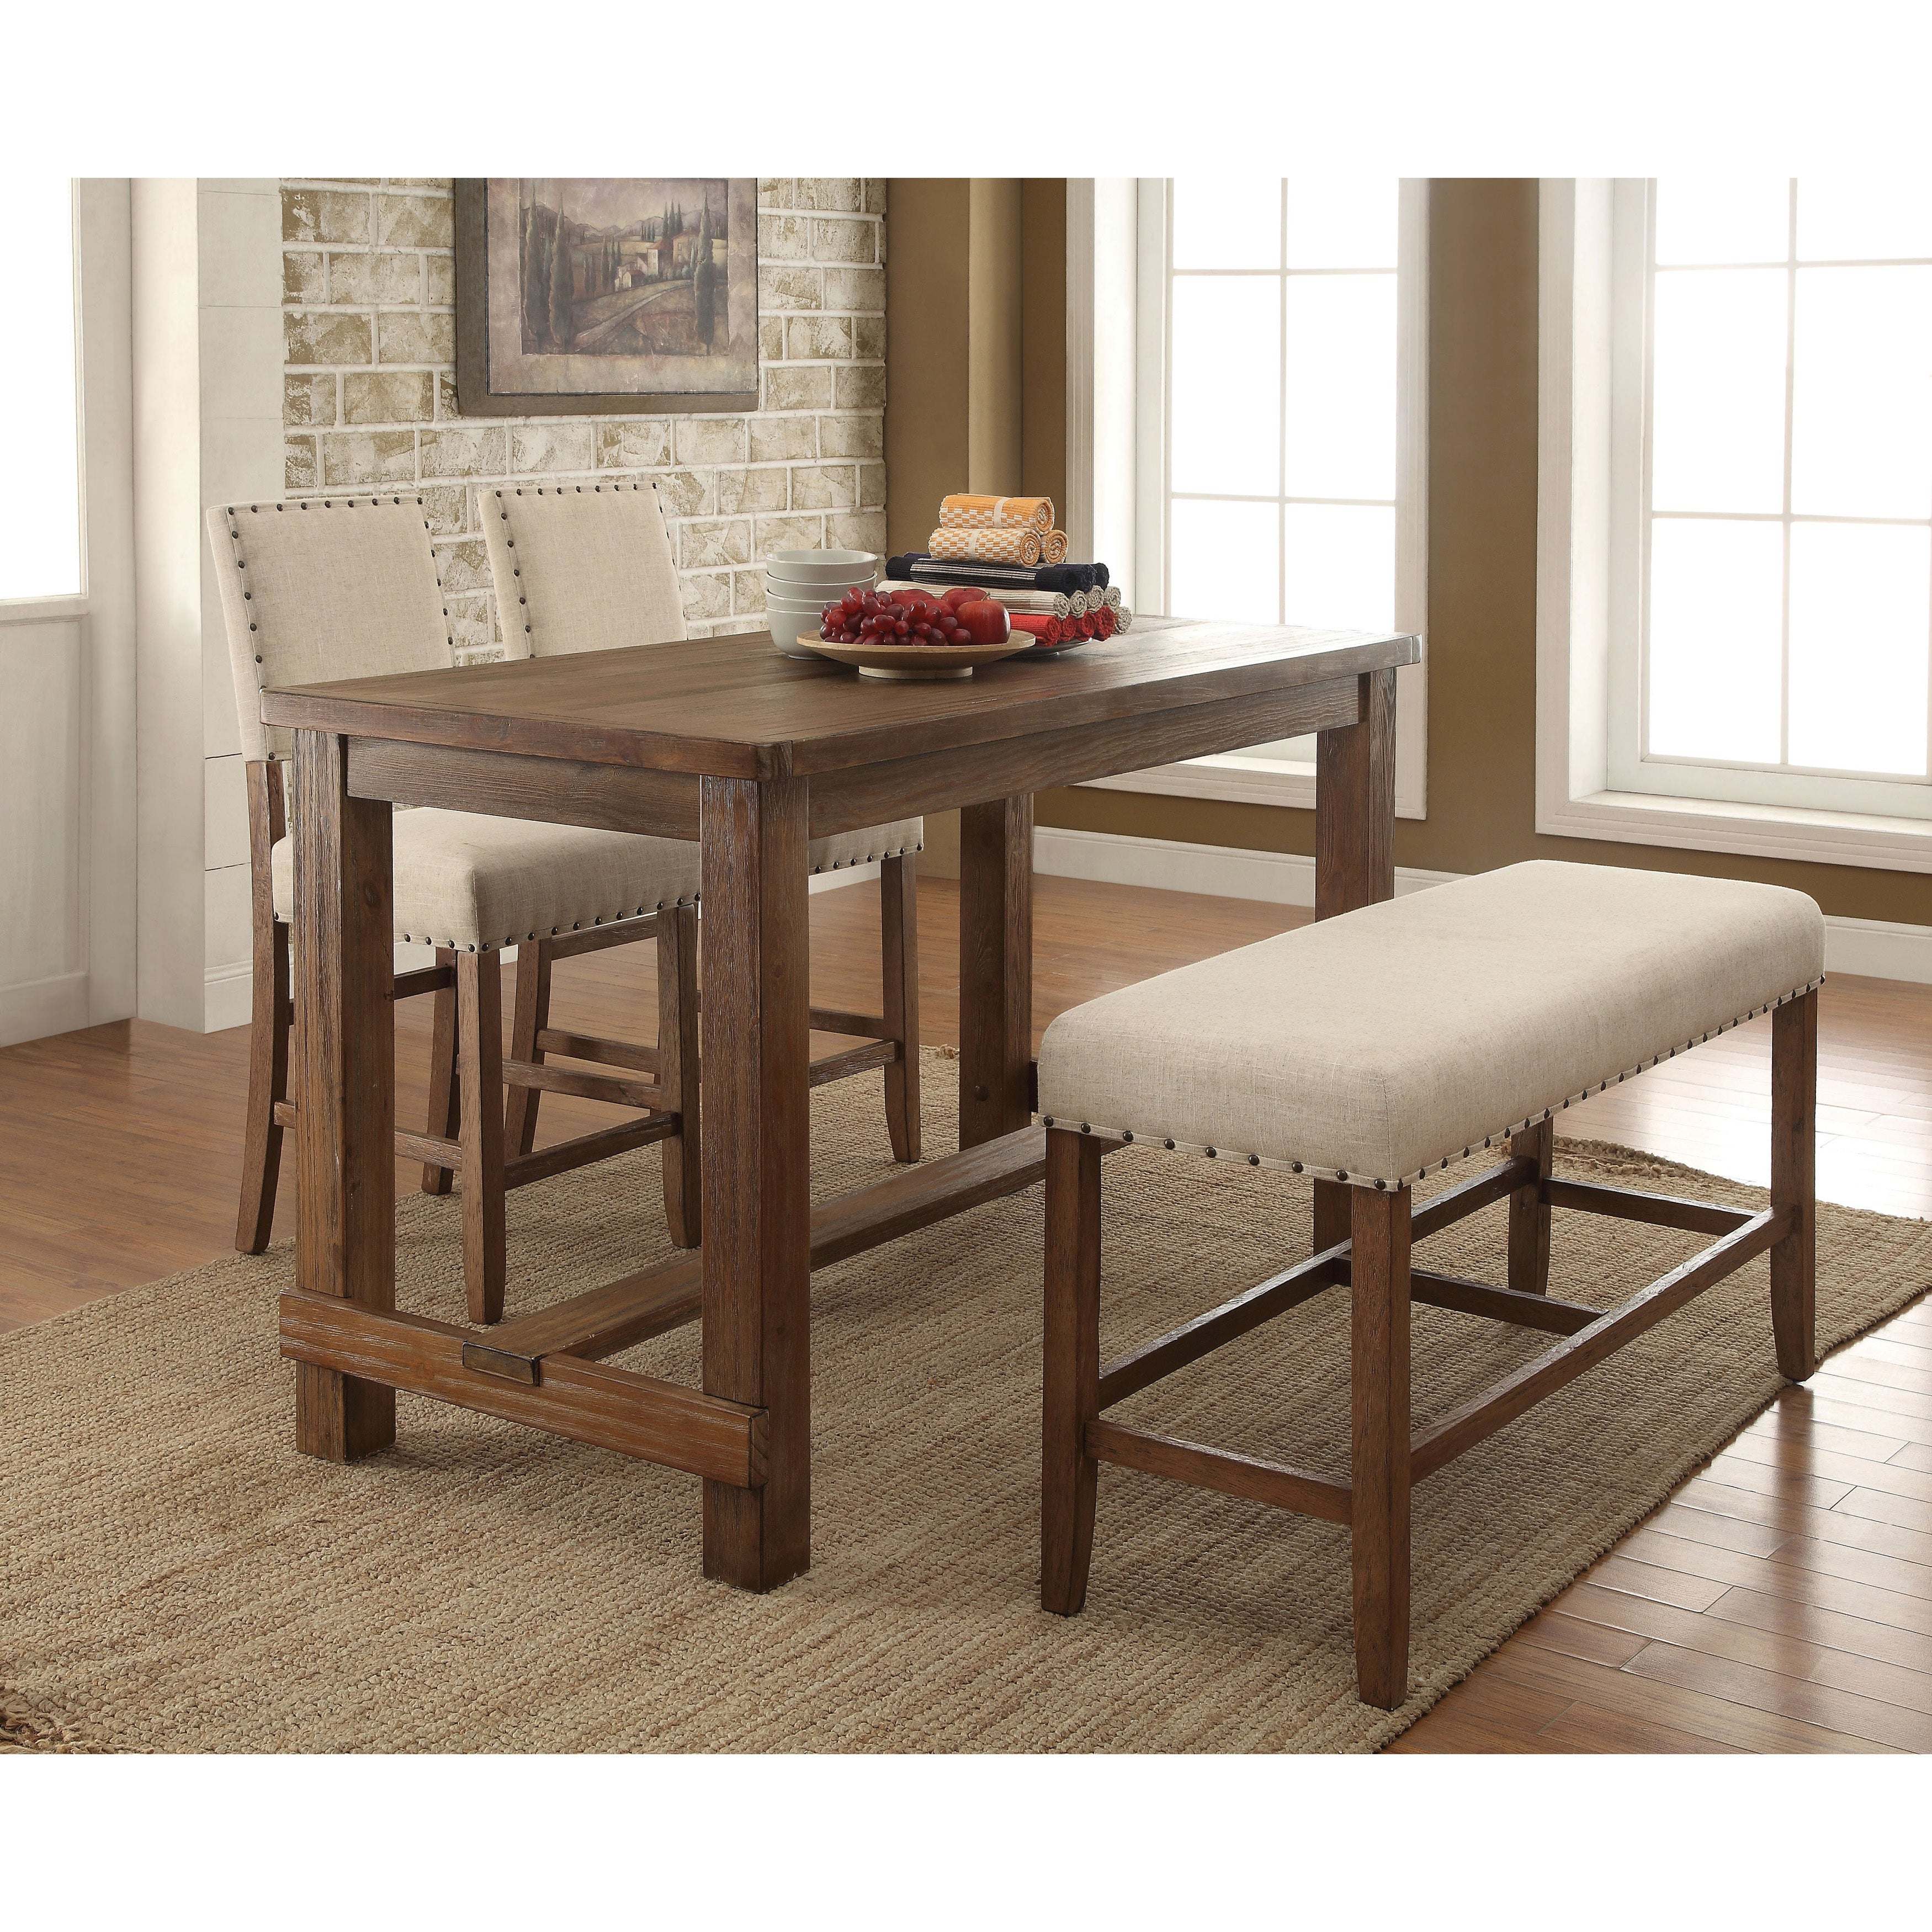 Furniture Of America Telara Contemporary Natural Tone Counter Height Dining  Bench